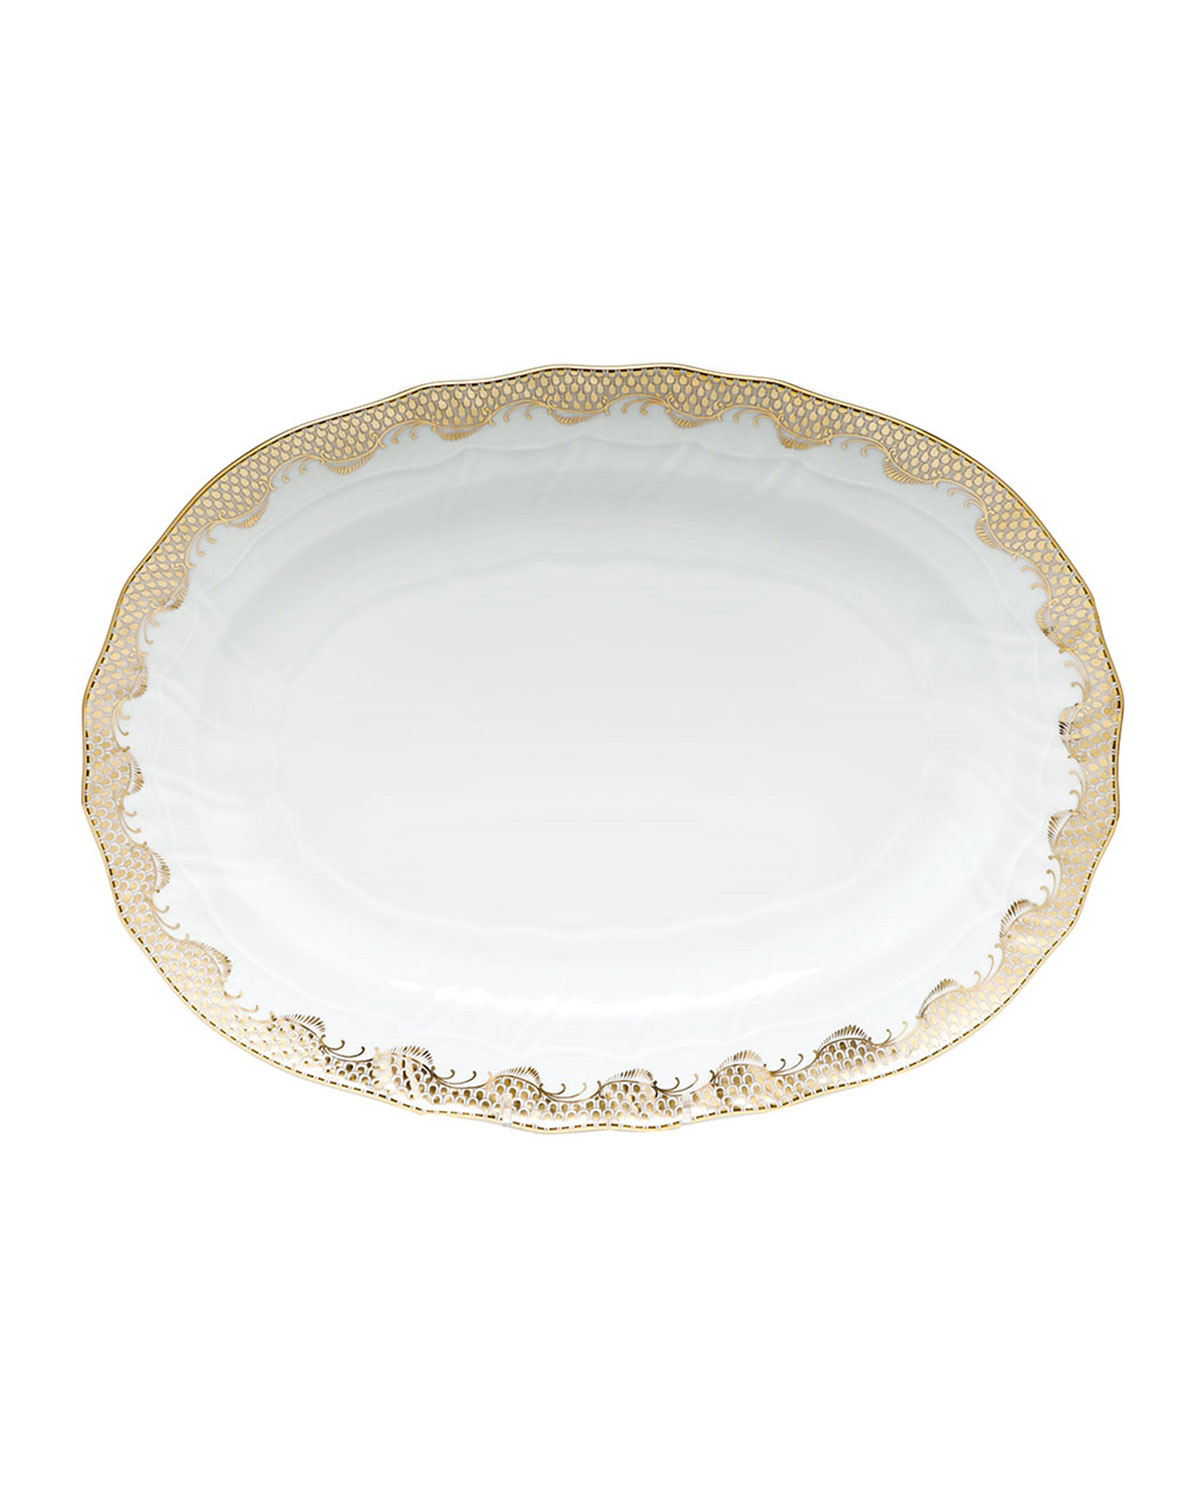 Herend GOLD FISH SCALE PLATTER